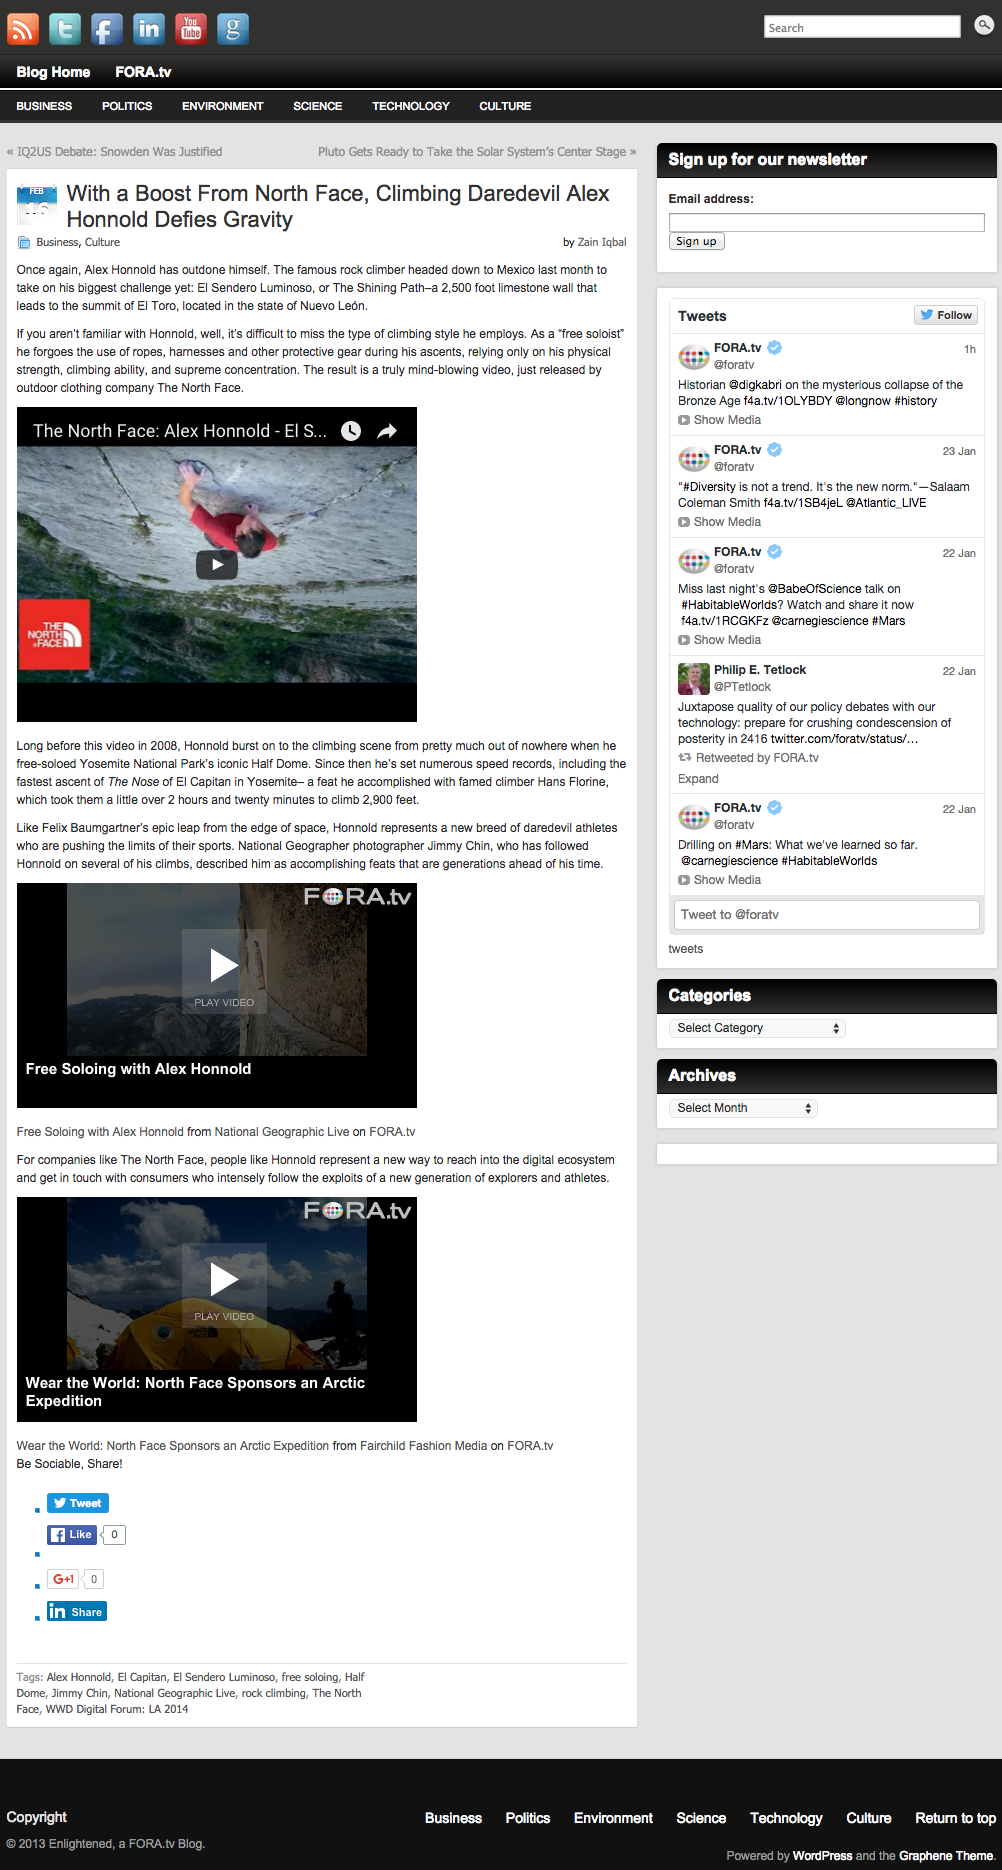 screencapture-enarchive-fora-tv-2014-02-climbing-daredevil-alex-honnold-defies-gravity-north-face.png